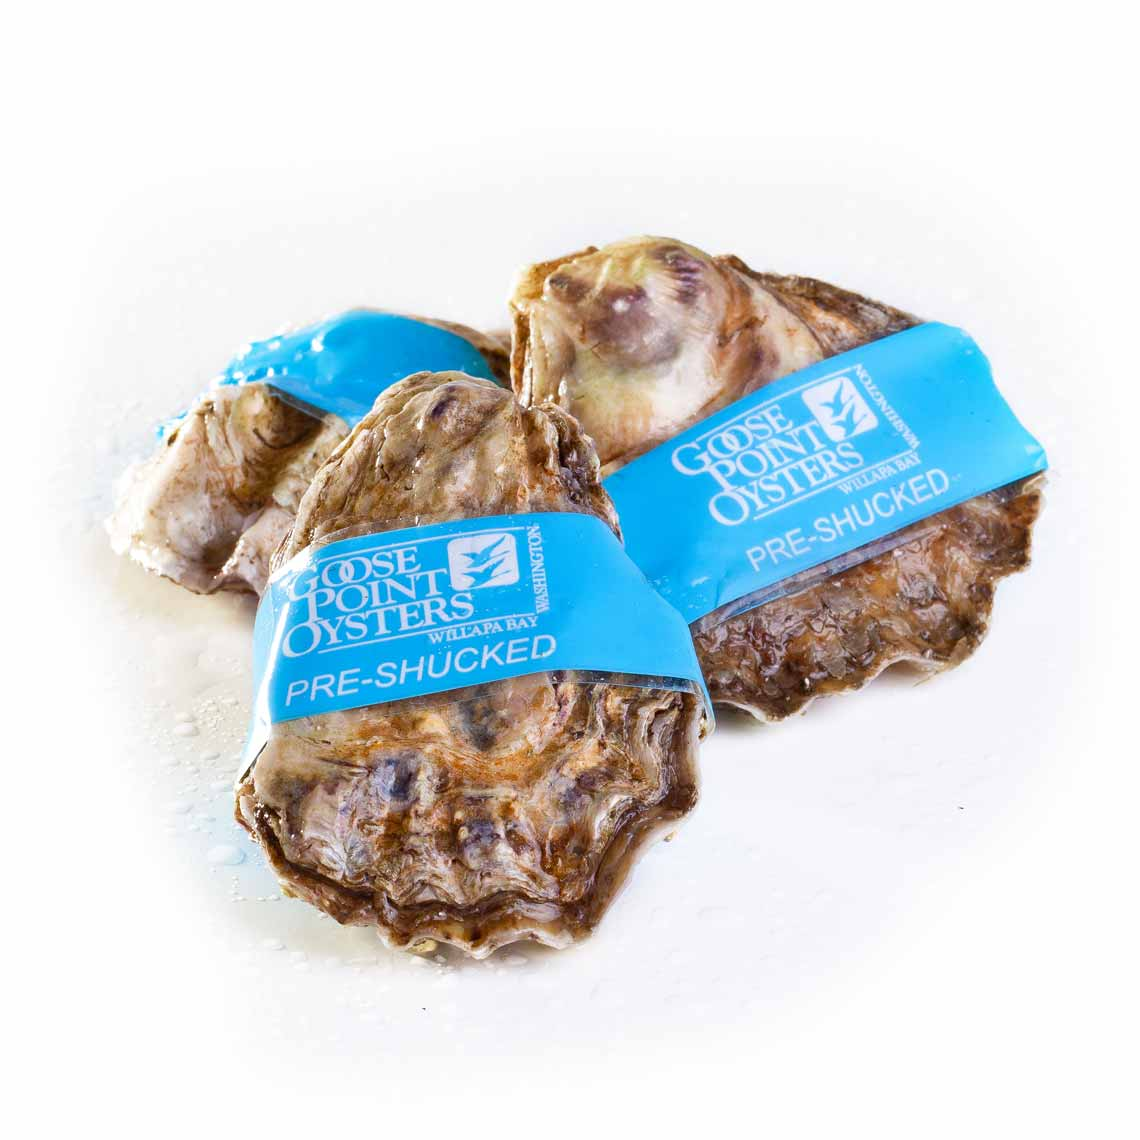 Goose Point BlueSeal™ Pre-Shucked Oysters